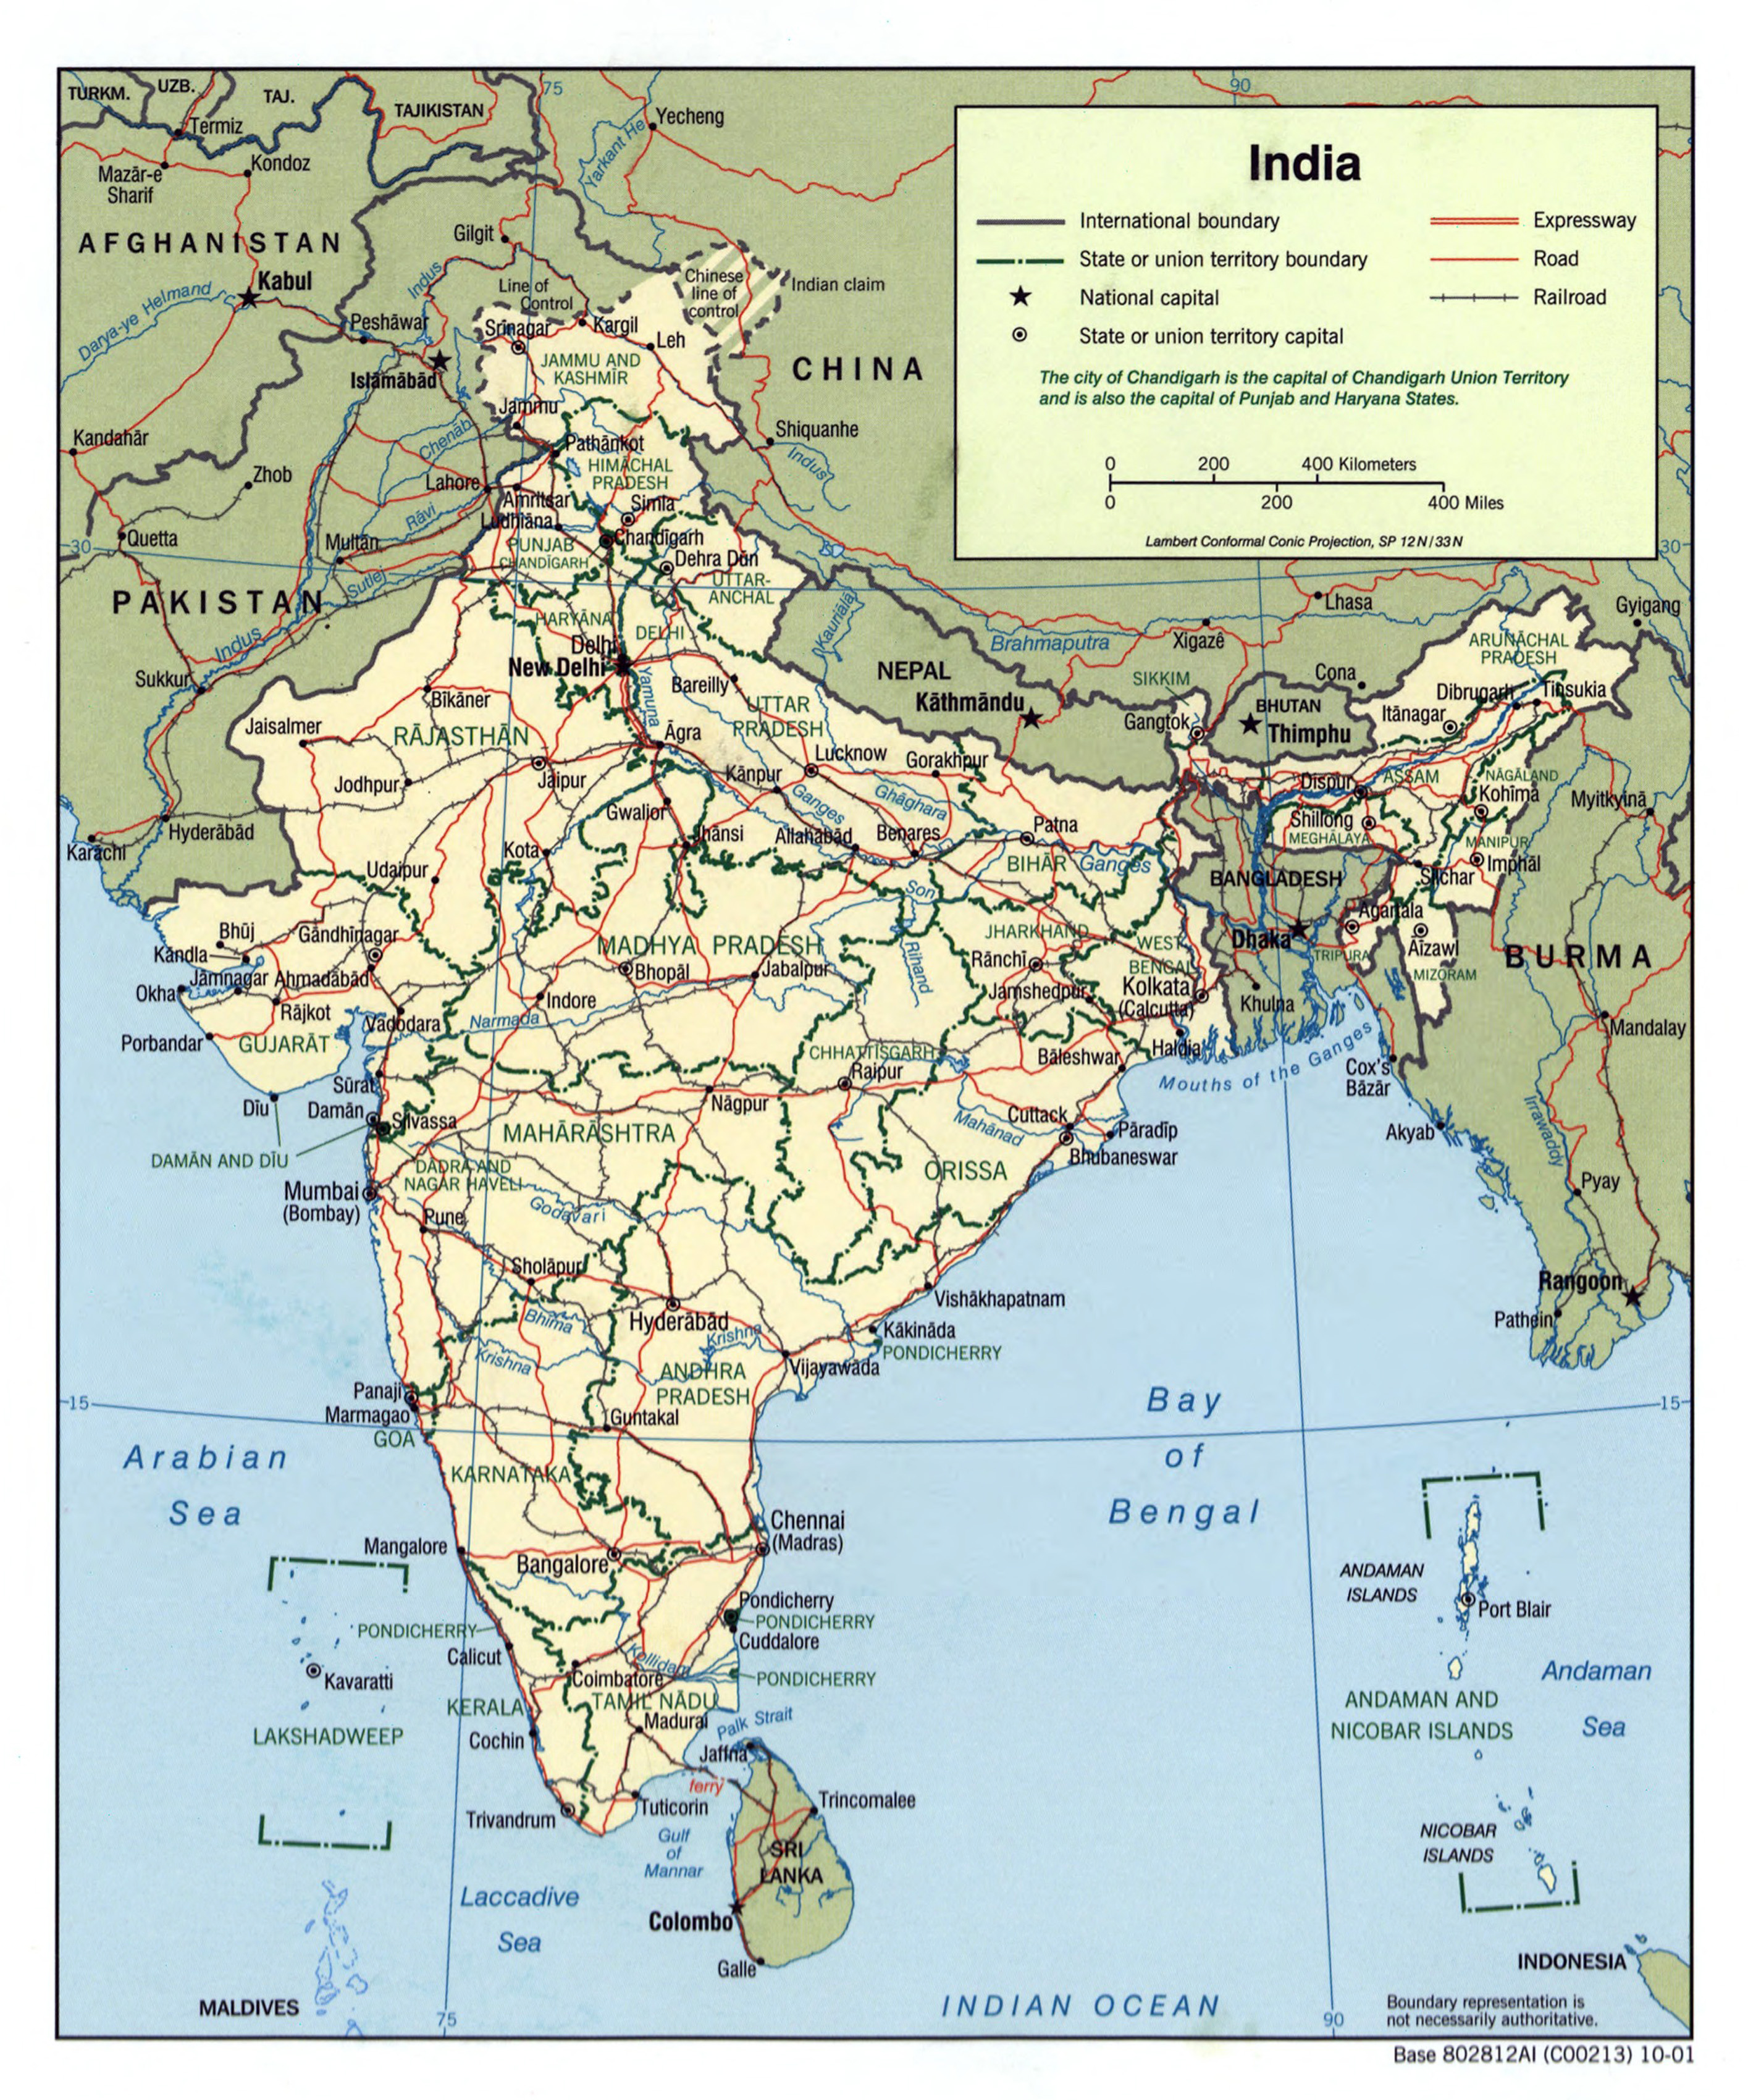 Large scale political and administrative map of India with ... on india water map, india world map, india industrial map, india high speed rail map, india agriculture map, india seaport map, india river map, india military map, india government map, india railway system, india automotive map, india airport map, benares india map, british india map, india gas pipeline map, india republic map, poona india map, india aviation map, india refinery map,